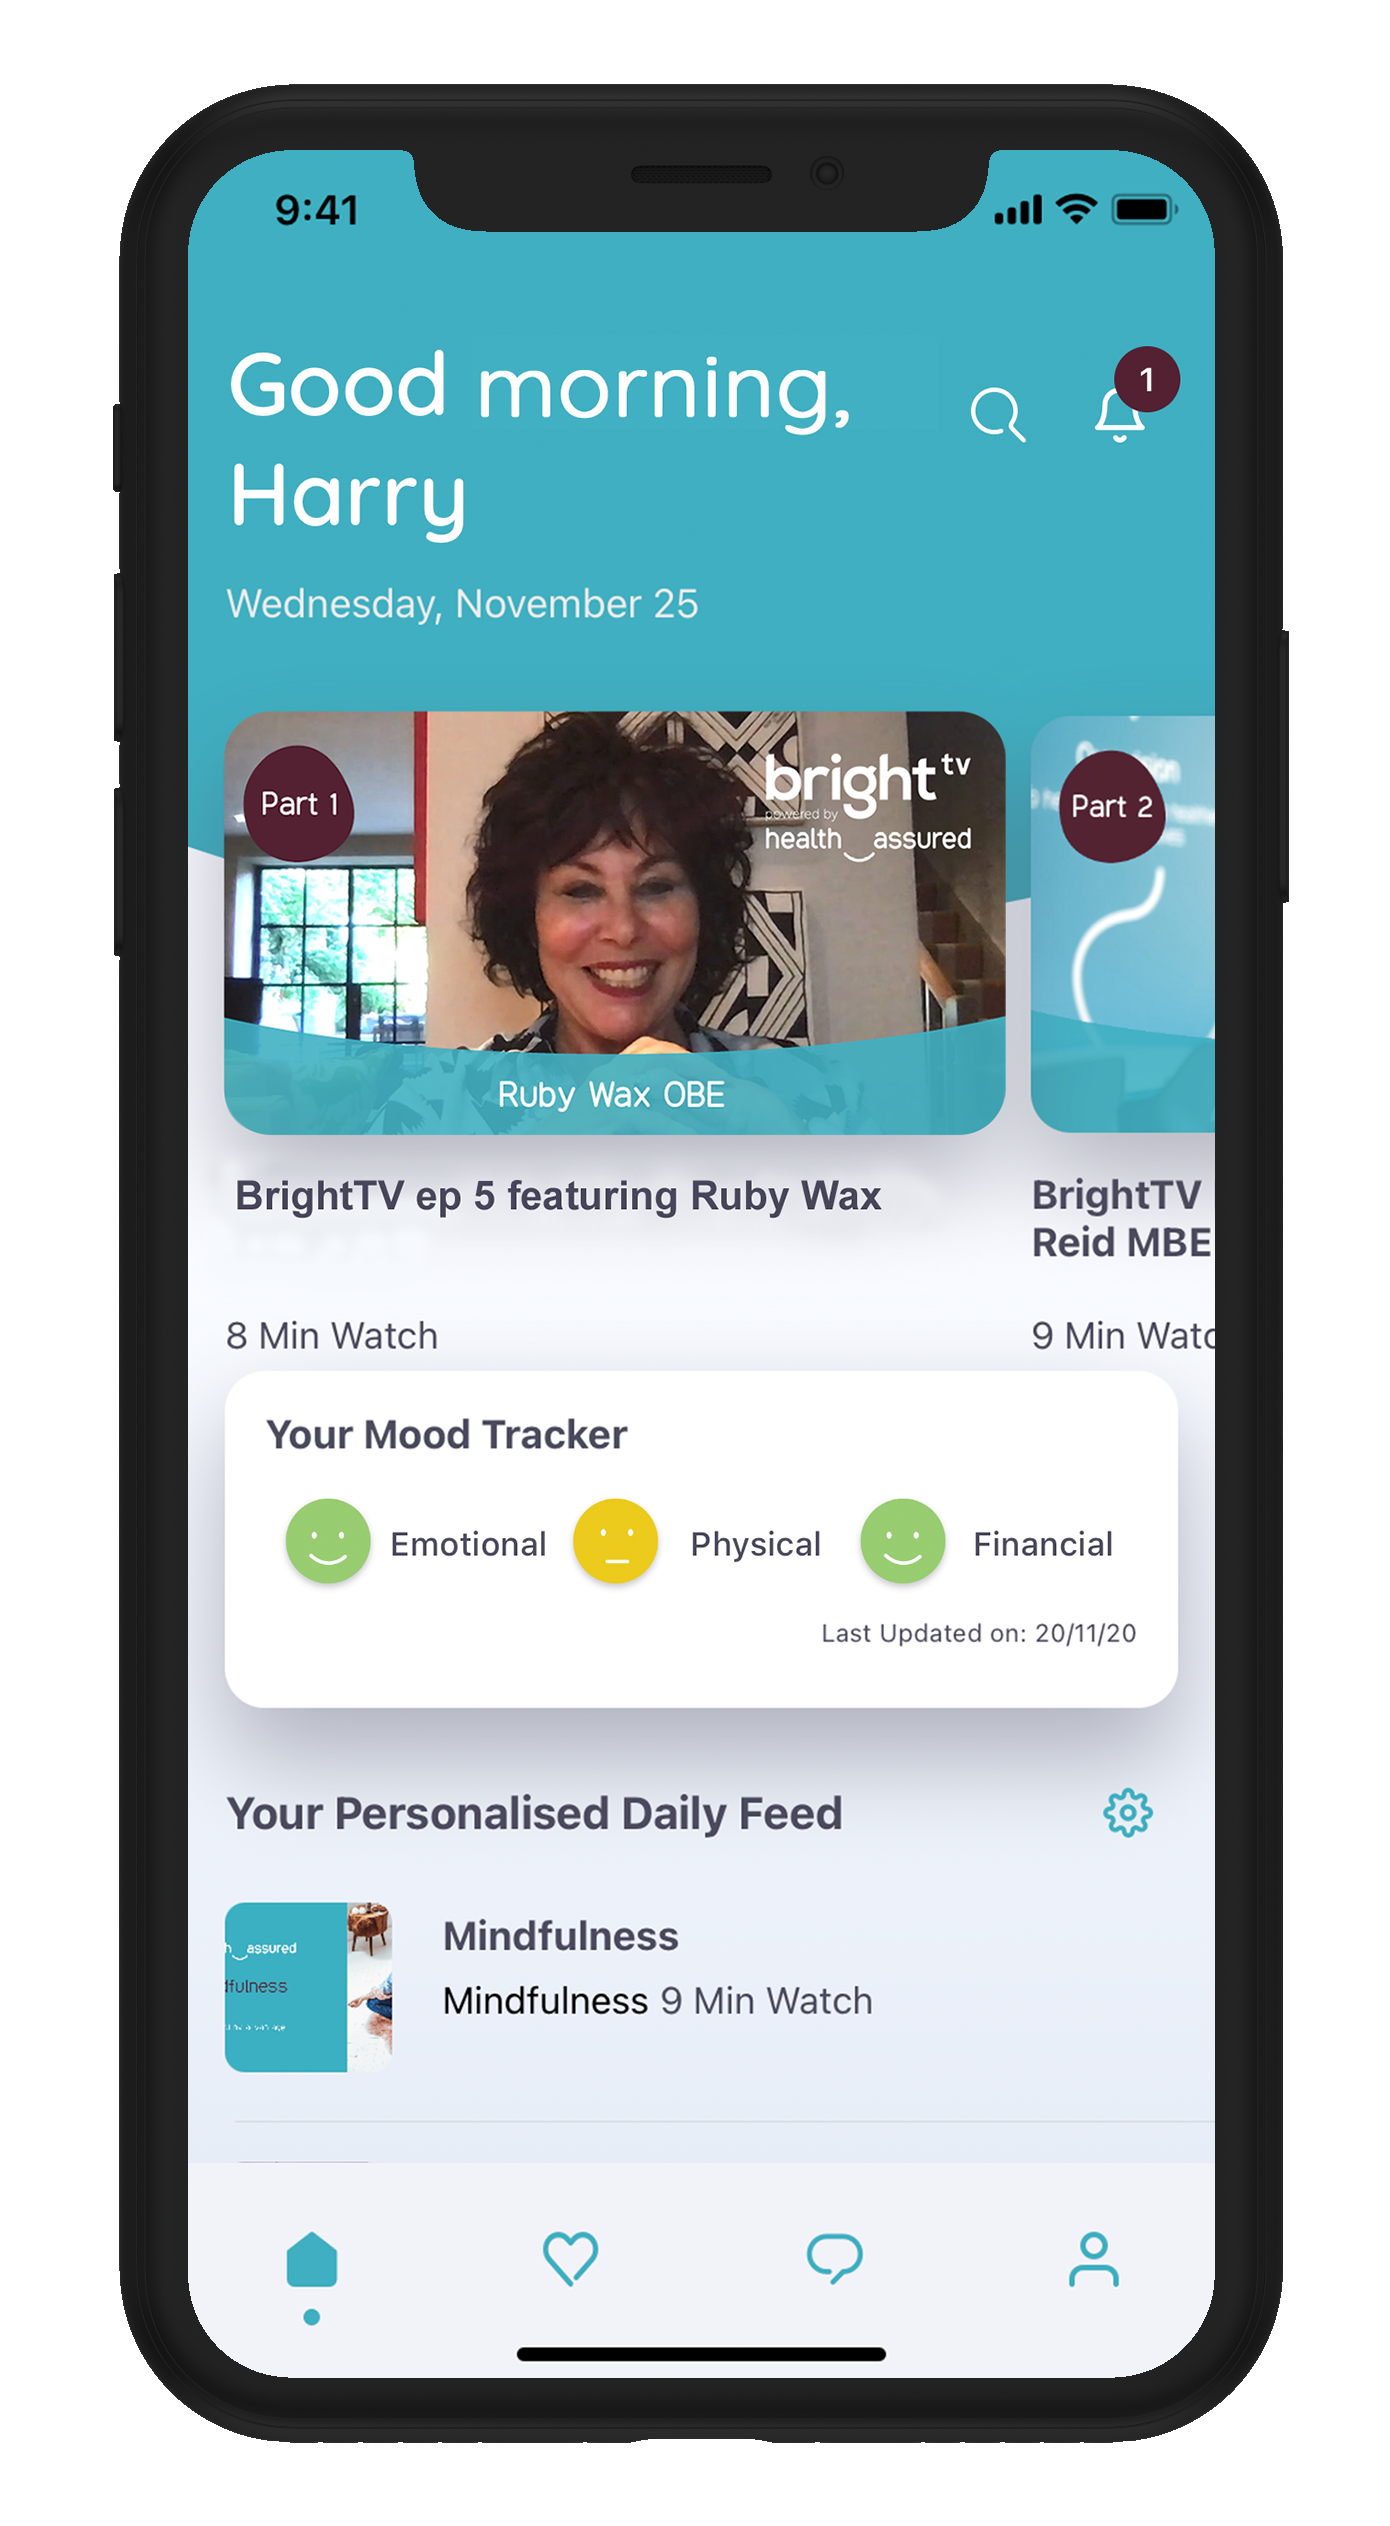 Health Assured to offer free access to mental health and wellbeing app to all NHS workers